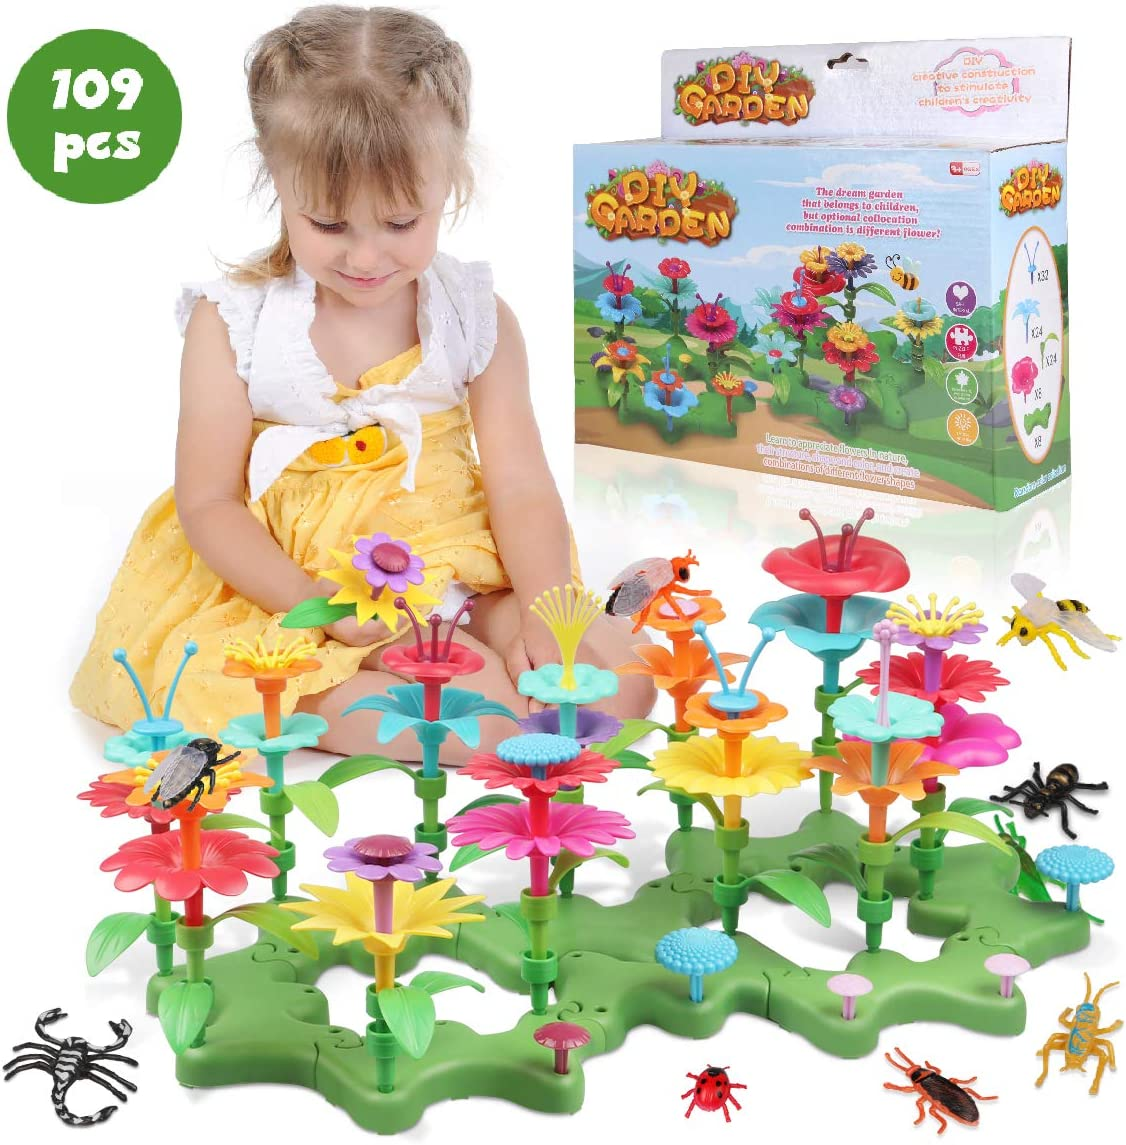 Lydaz 109 PCS Flower Garden Building Toys for Girls, STEM DIY Craft Toys - Kids Flower Educational Pretend Gardening Playset, Outdoor Toys for Toddlers 3 4 5 6 7 8 9 Year Old Girl Birthday Gift